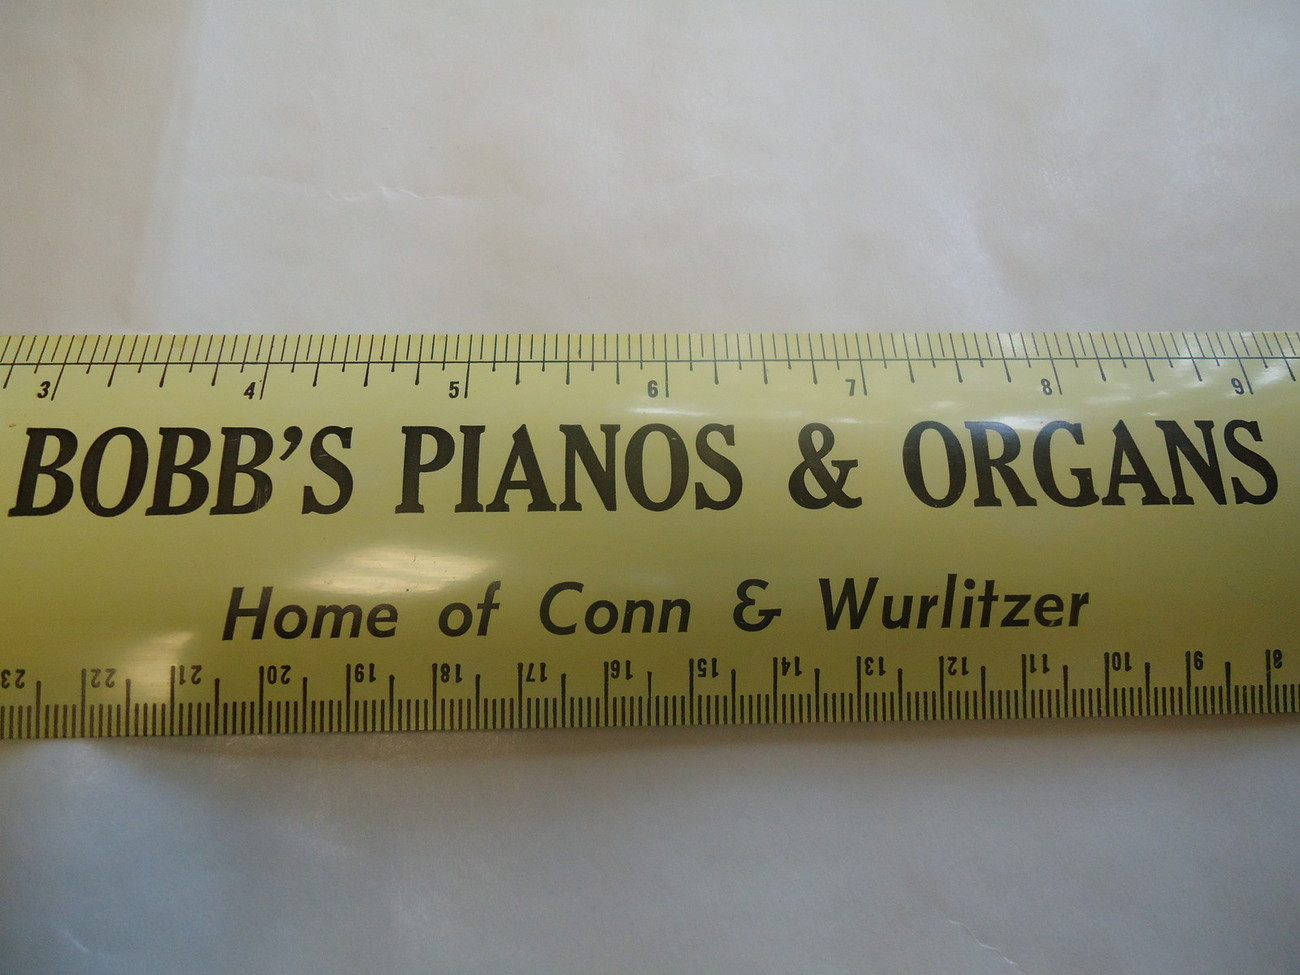 Primary image for Vintage 1960  BOBB'S PIANOS & ORGANS  Aluminum or Steel Ruler Advertising